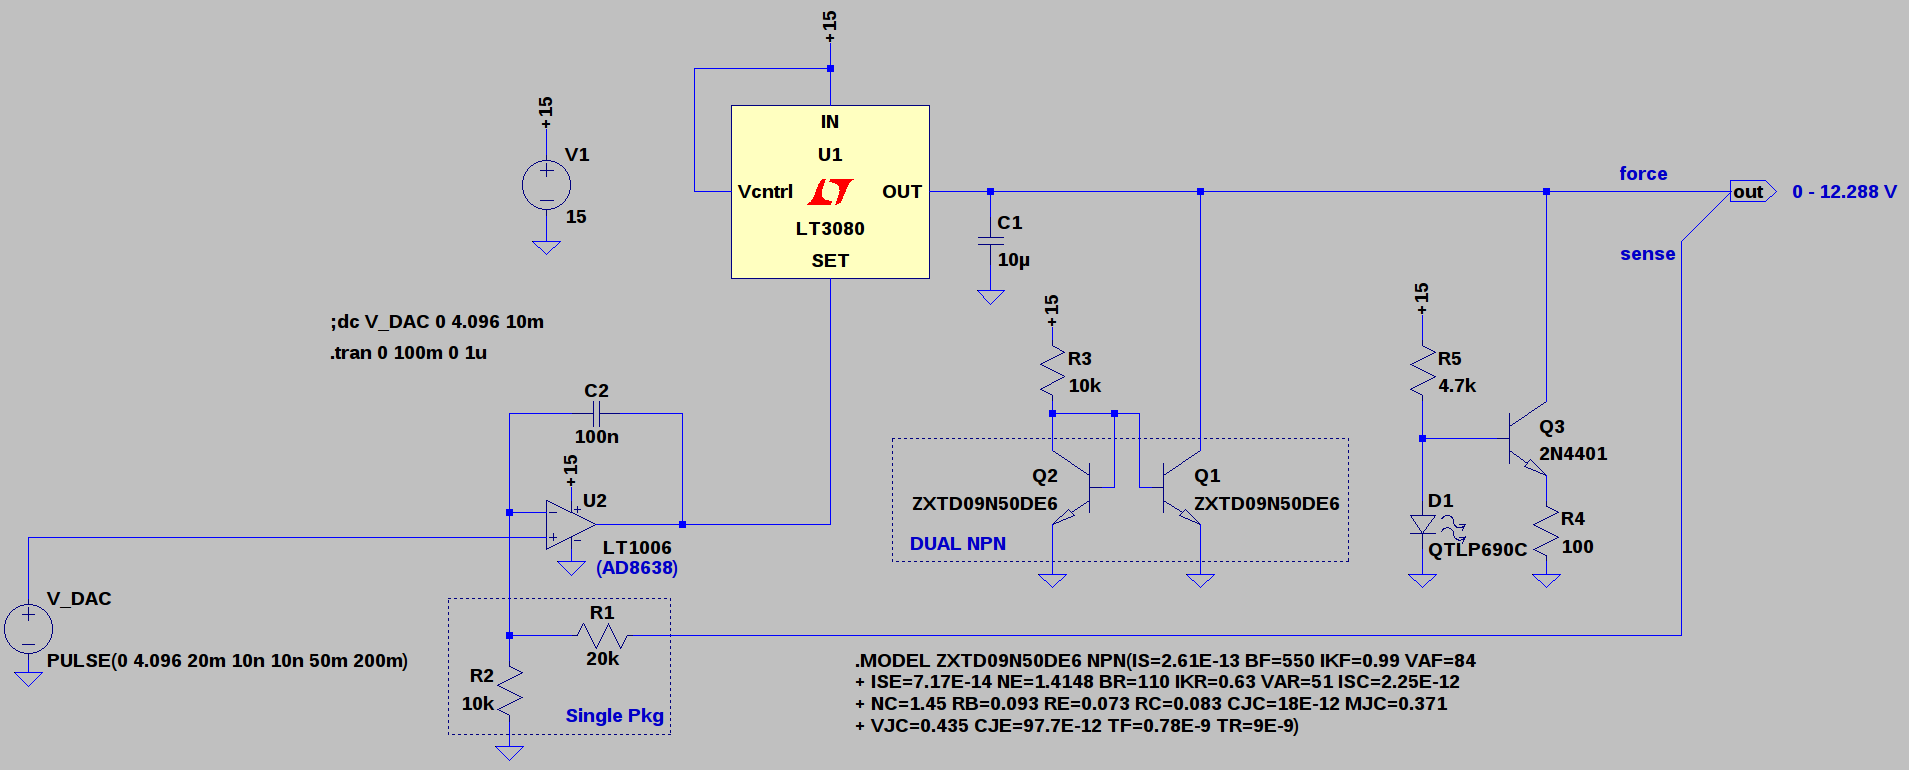 Automated Led Laser Diode Analysis And Modeling Dc Motor Speed Controller Circuit Diagram With Lm317 The First Prototype Used A 10 Bit Dac Driving An To Produce 125 1354v Supply 12mv Lsb Steps There Were Handful Of Things I Didnt Like